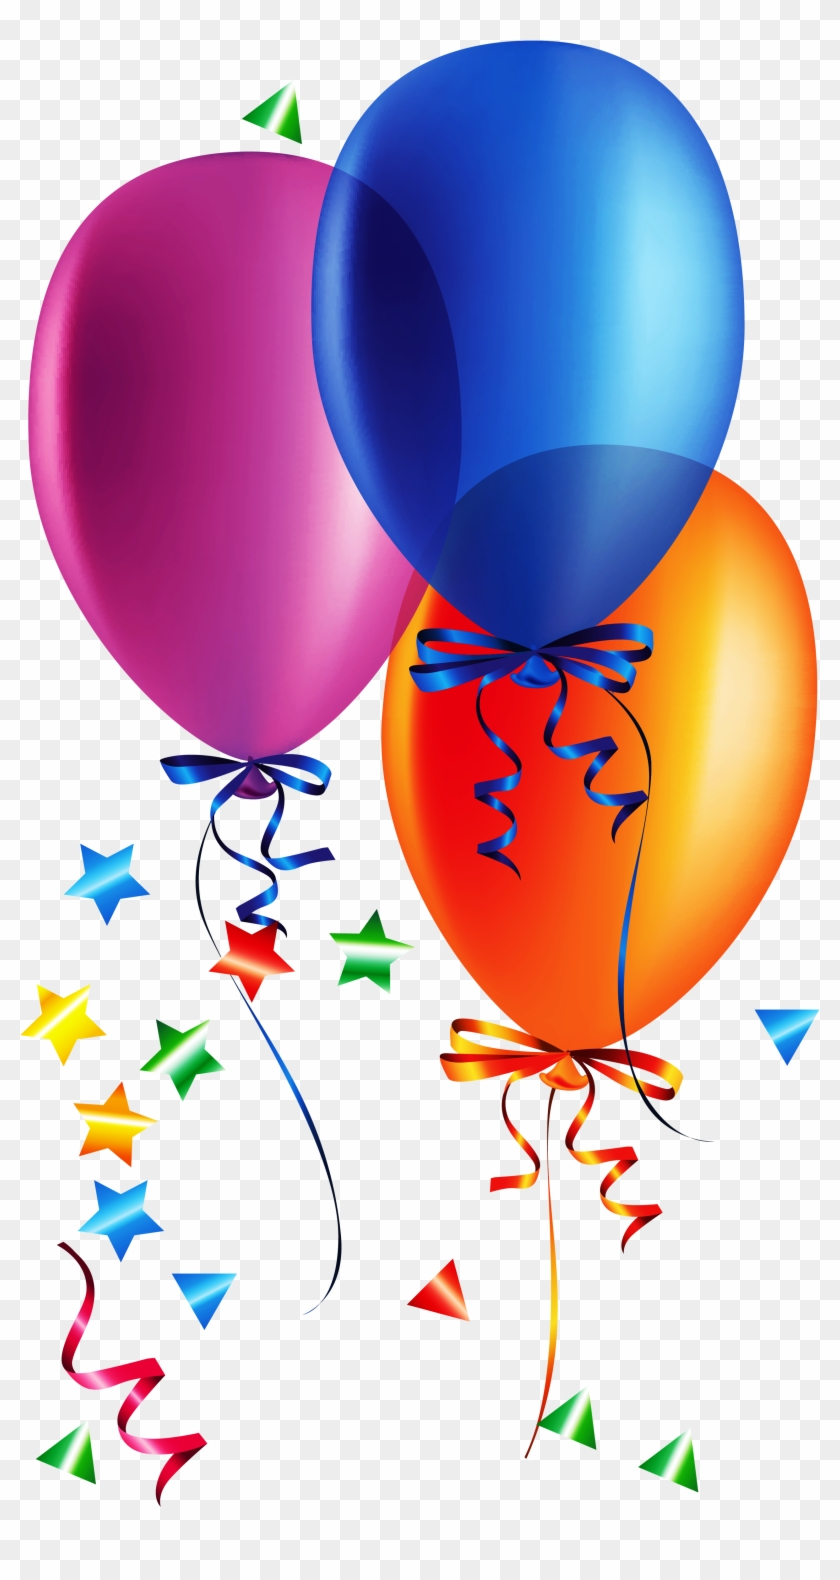 Clip Art With Balloons Confetti Clipart Balloon Pencil - Happy Birthday With Balloons #371417